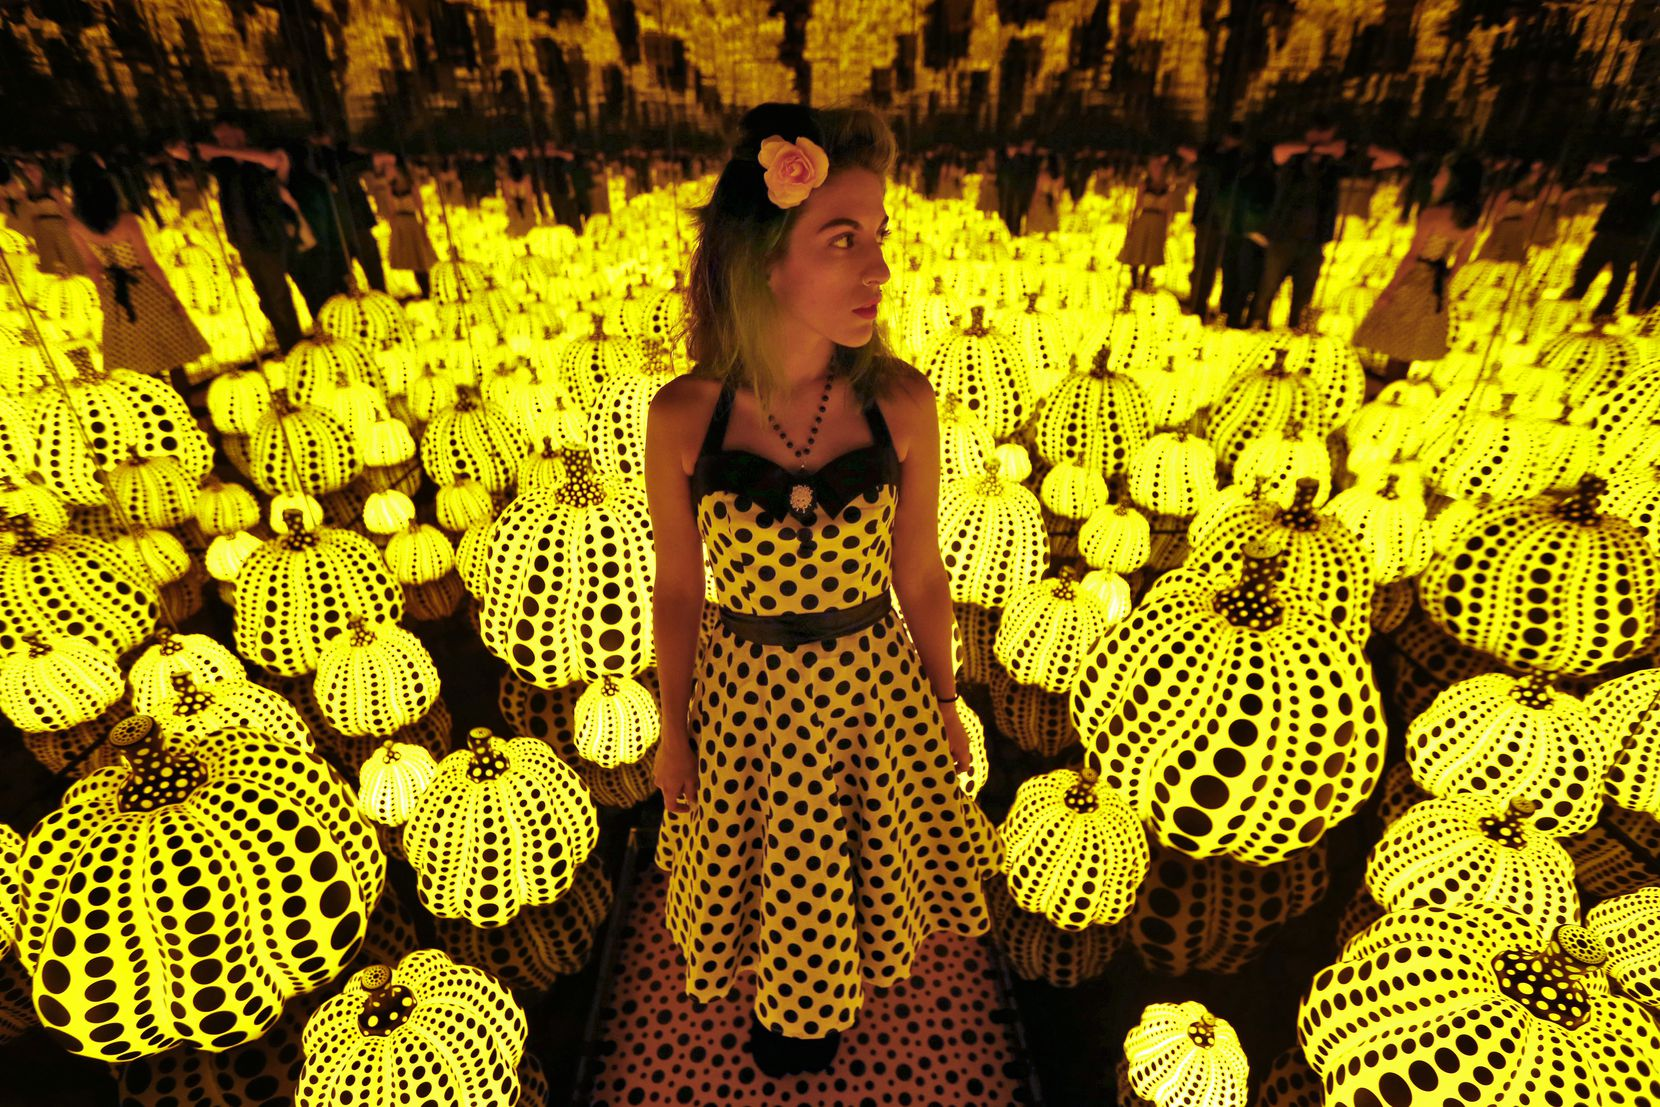 Lyza Hernandez looks at the Yayoi Kusama's installation: All the Eternal Love I Have for the Pumpkins, at the Dallas Museum of Art in Dallas on Sept. 22, 2017.